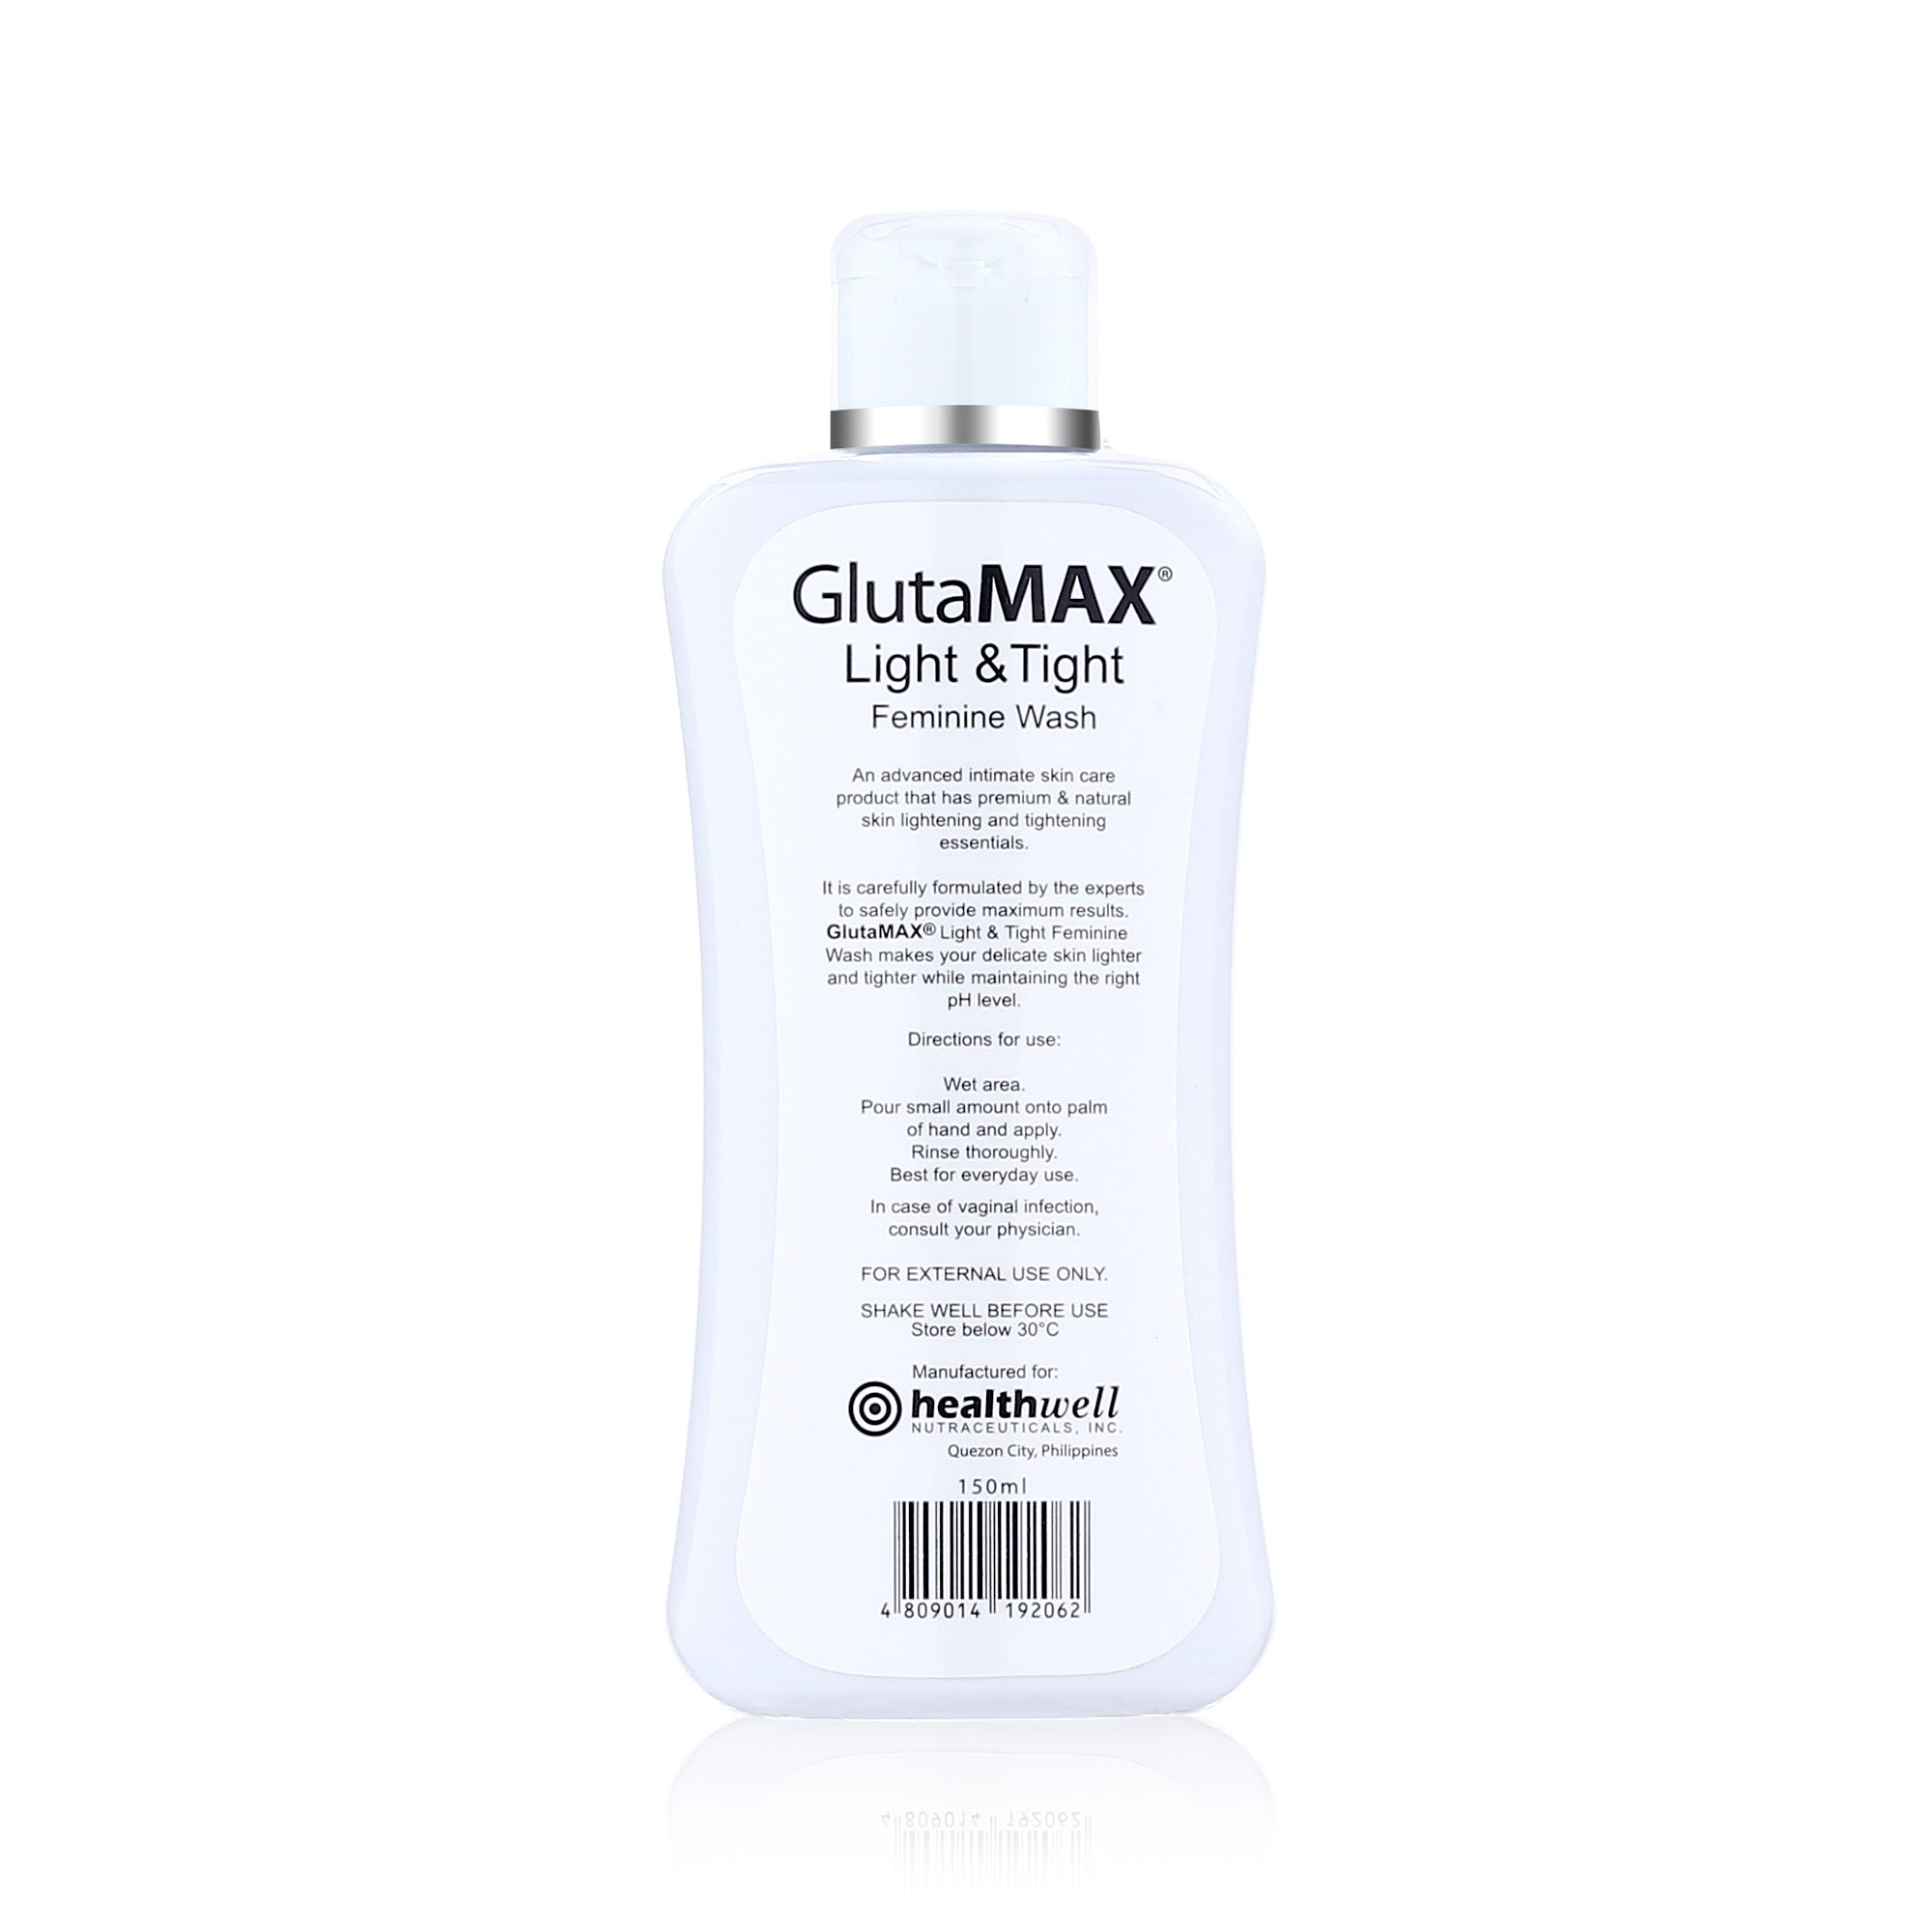 GlutaMAX Feminine Wash 150ml